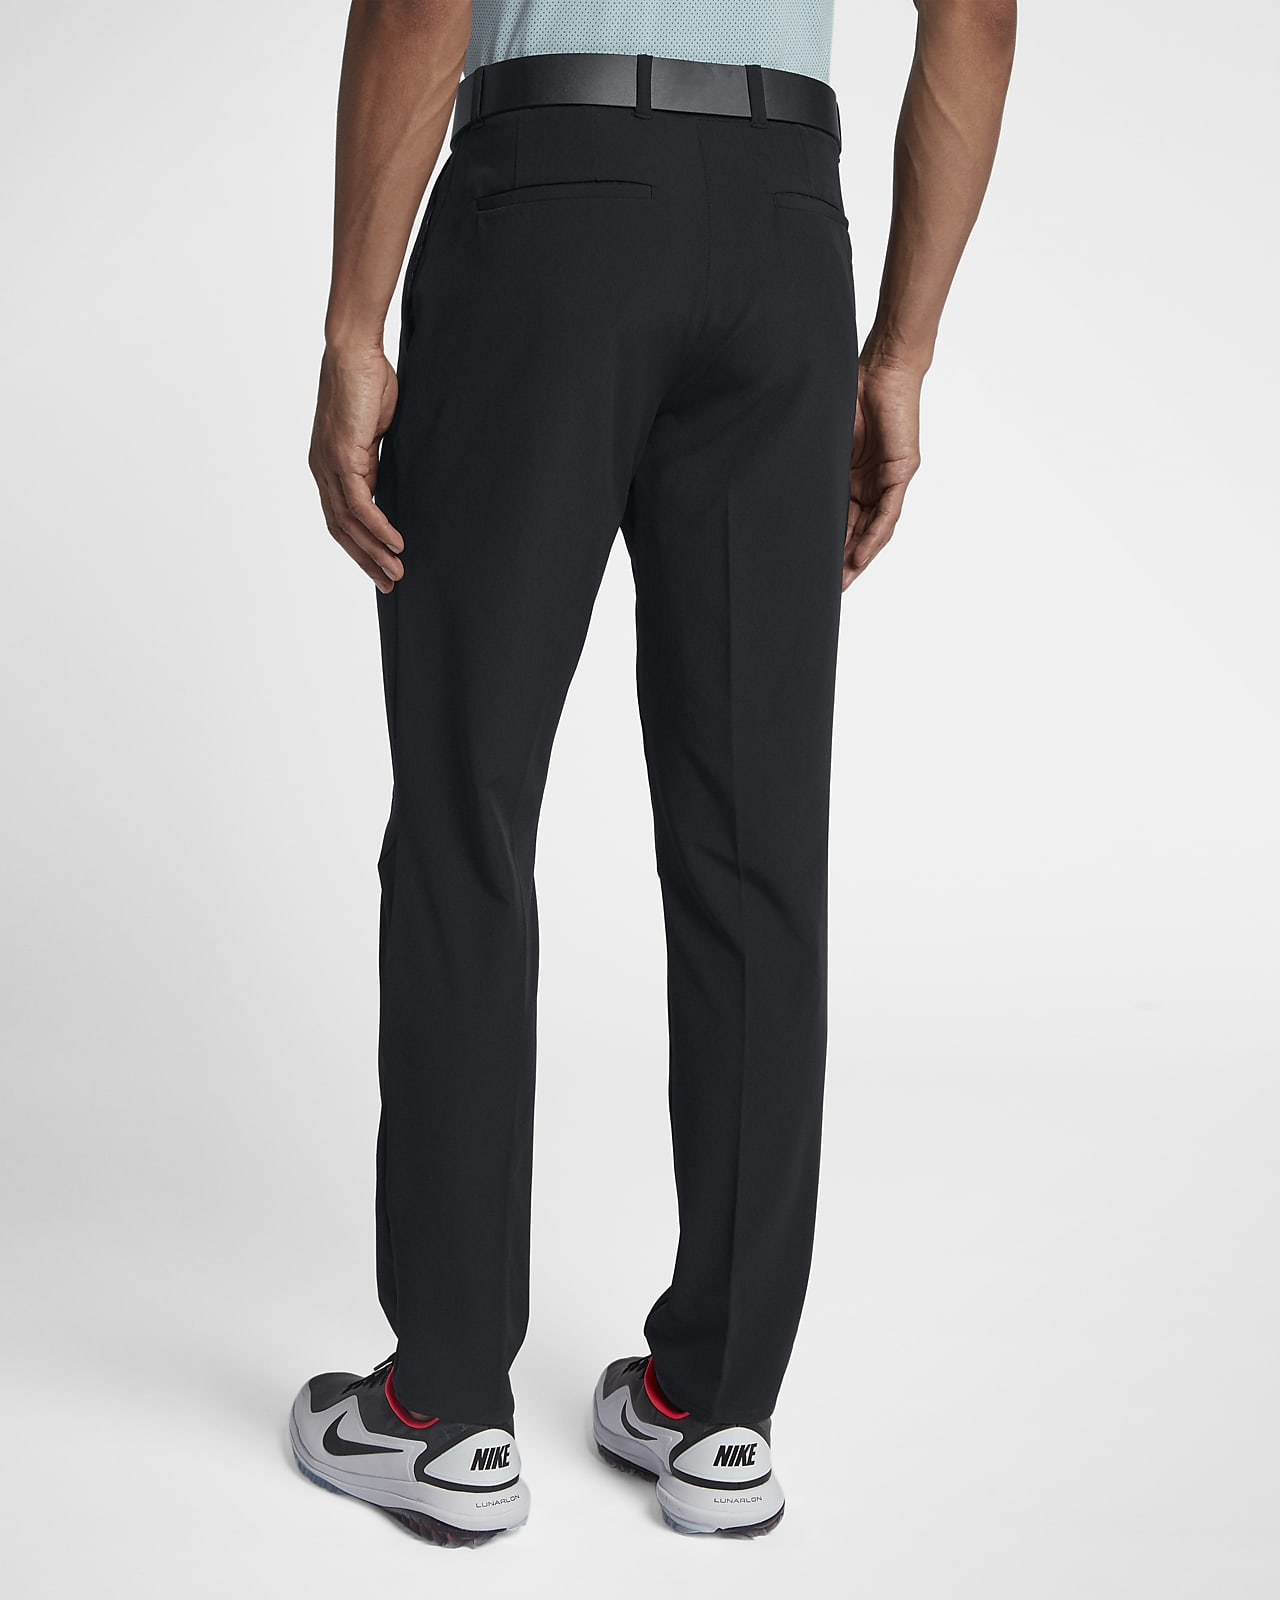 Alegre demostración guión  Nike Flex Men's Slim-Fit Golf Trousers. Nike GB